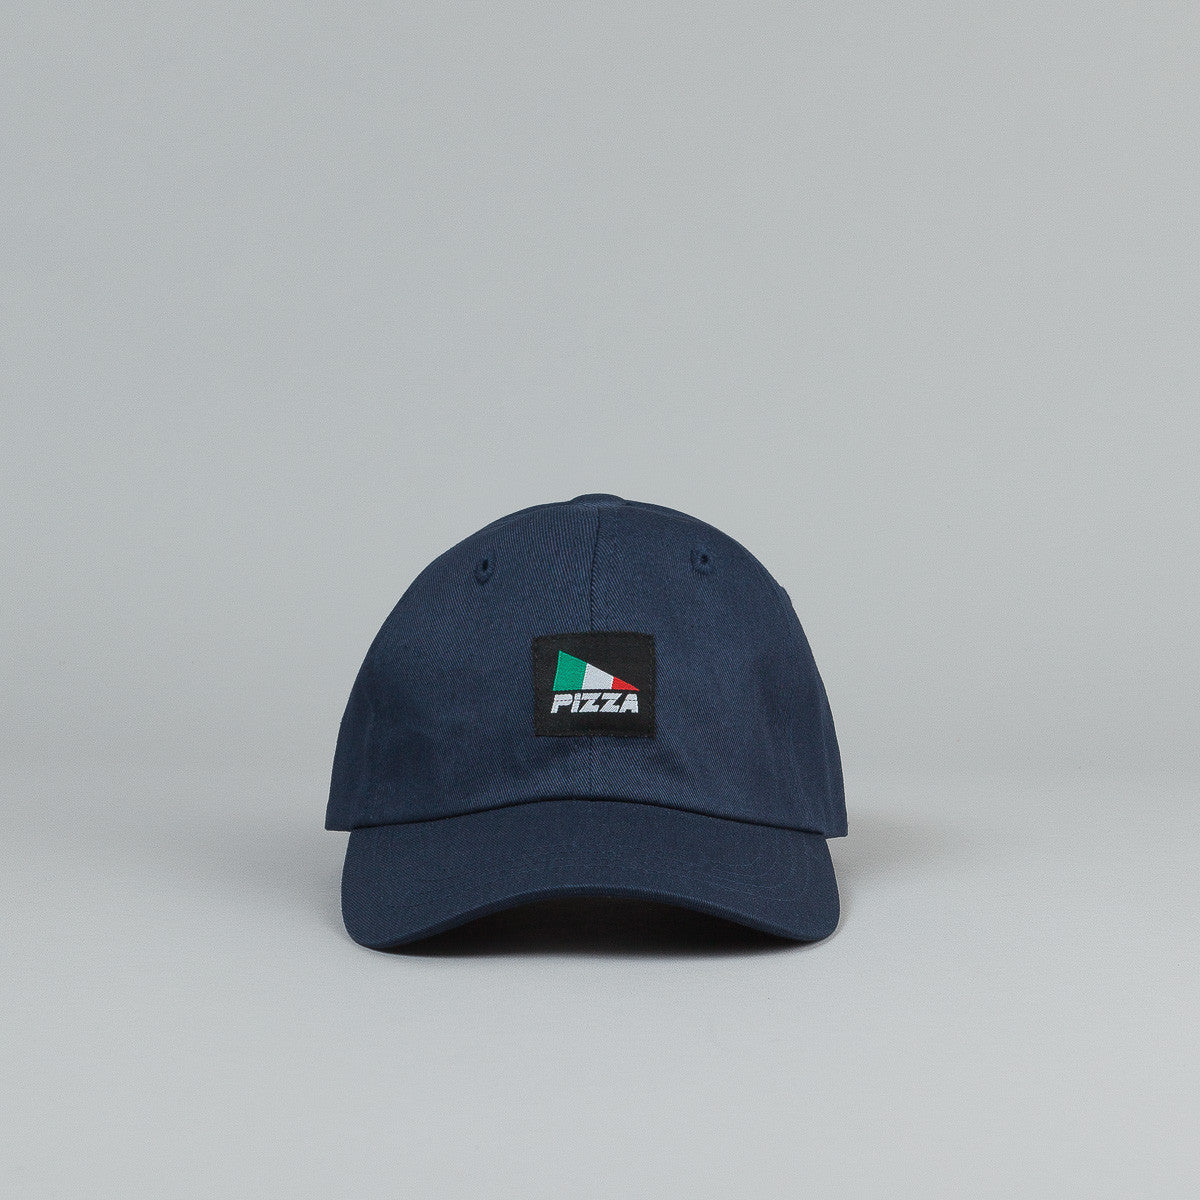 Pizza Skateboards Delivery Boy Cap - Navy